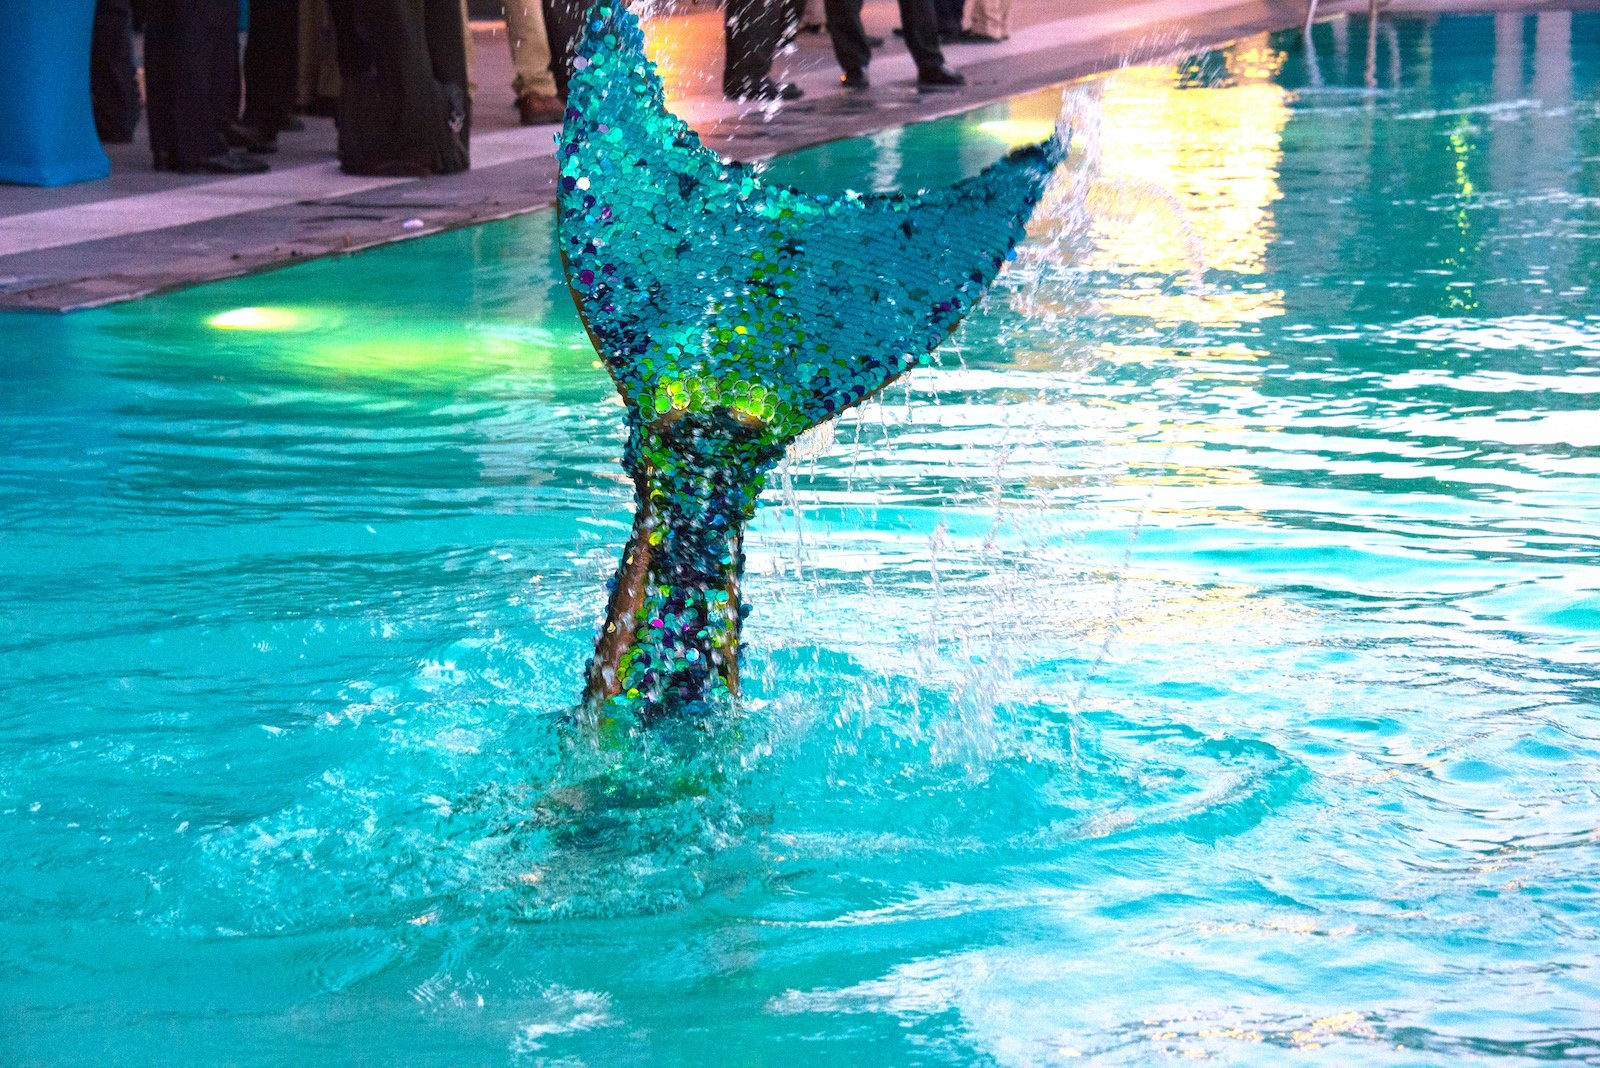 Bar Mitzvah & Bat Mitzvah Ideas Mermaid Photo Booth Performer Entertainment Los Angeles Photo | Linden Wolbert | Mermaids in Motion